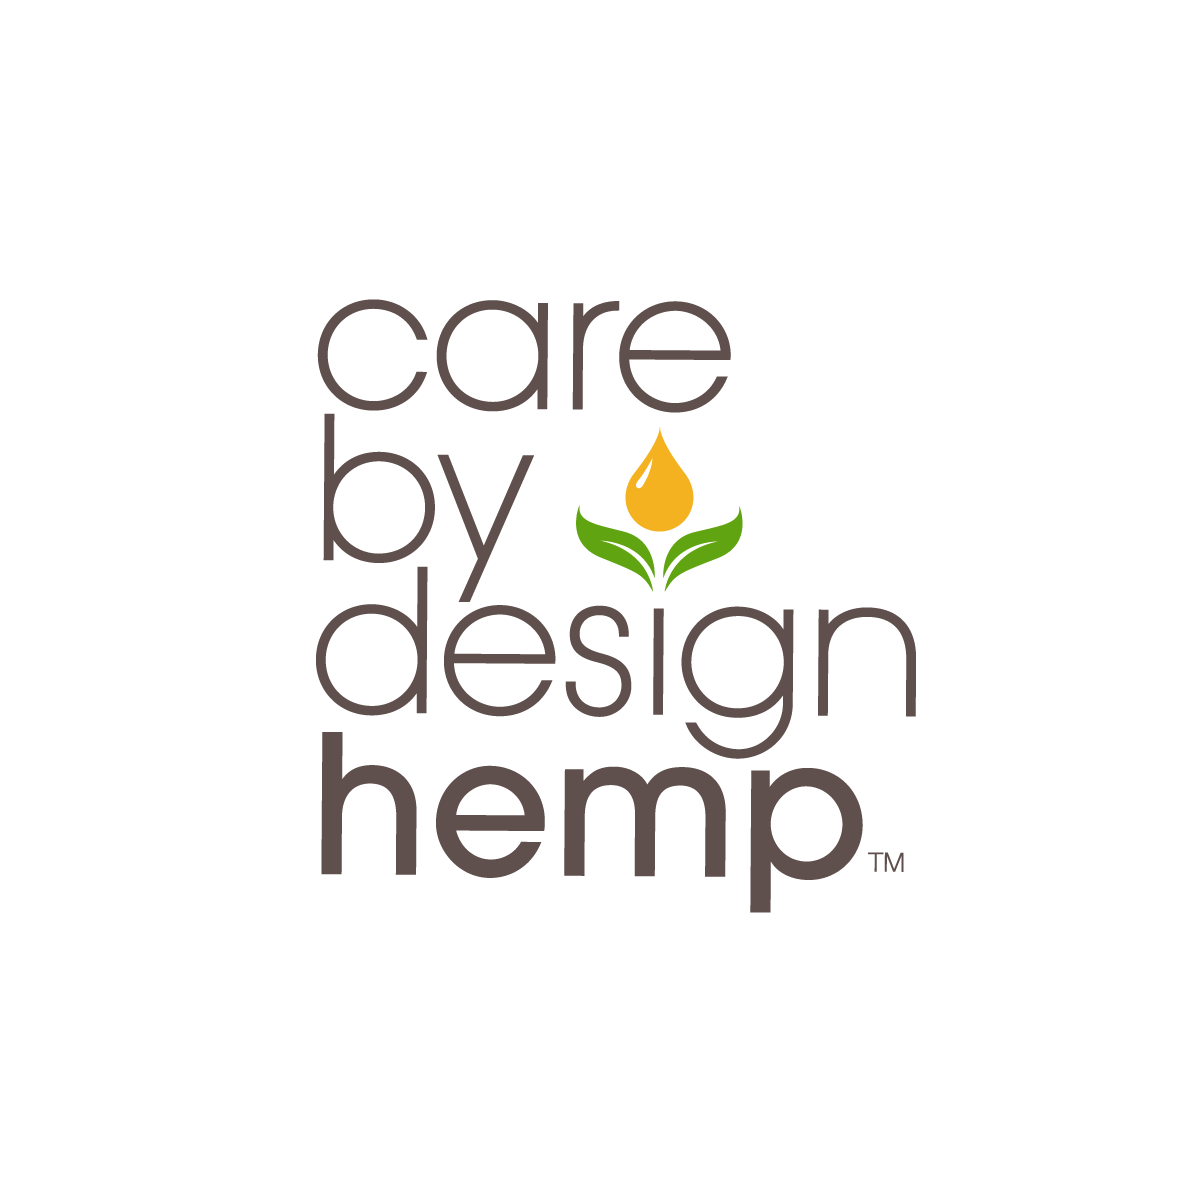 Care by Design Hemp